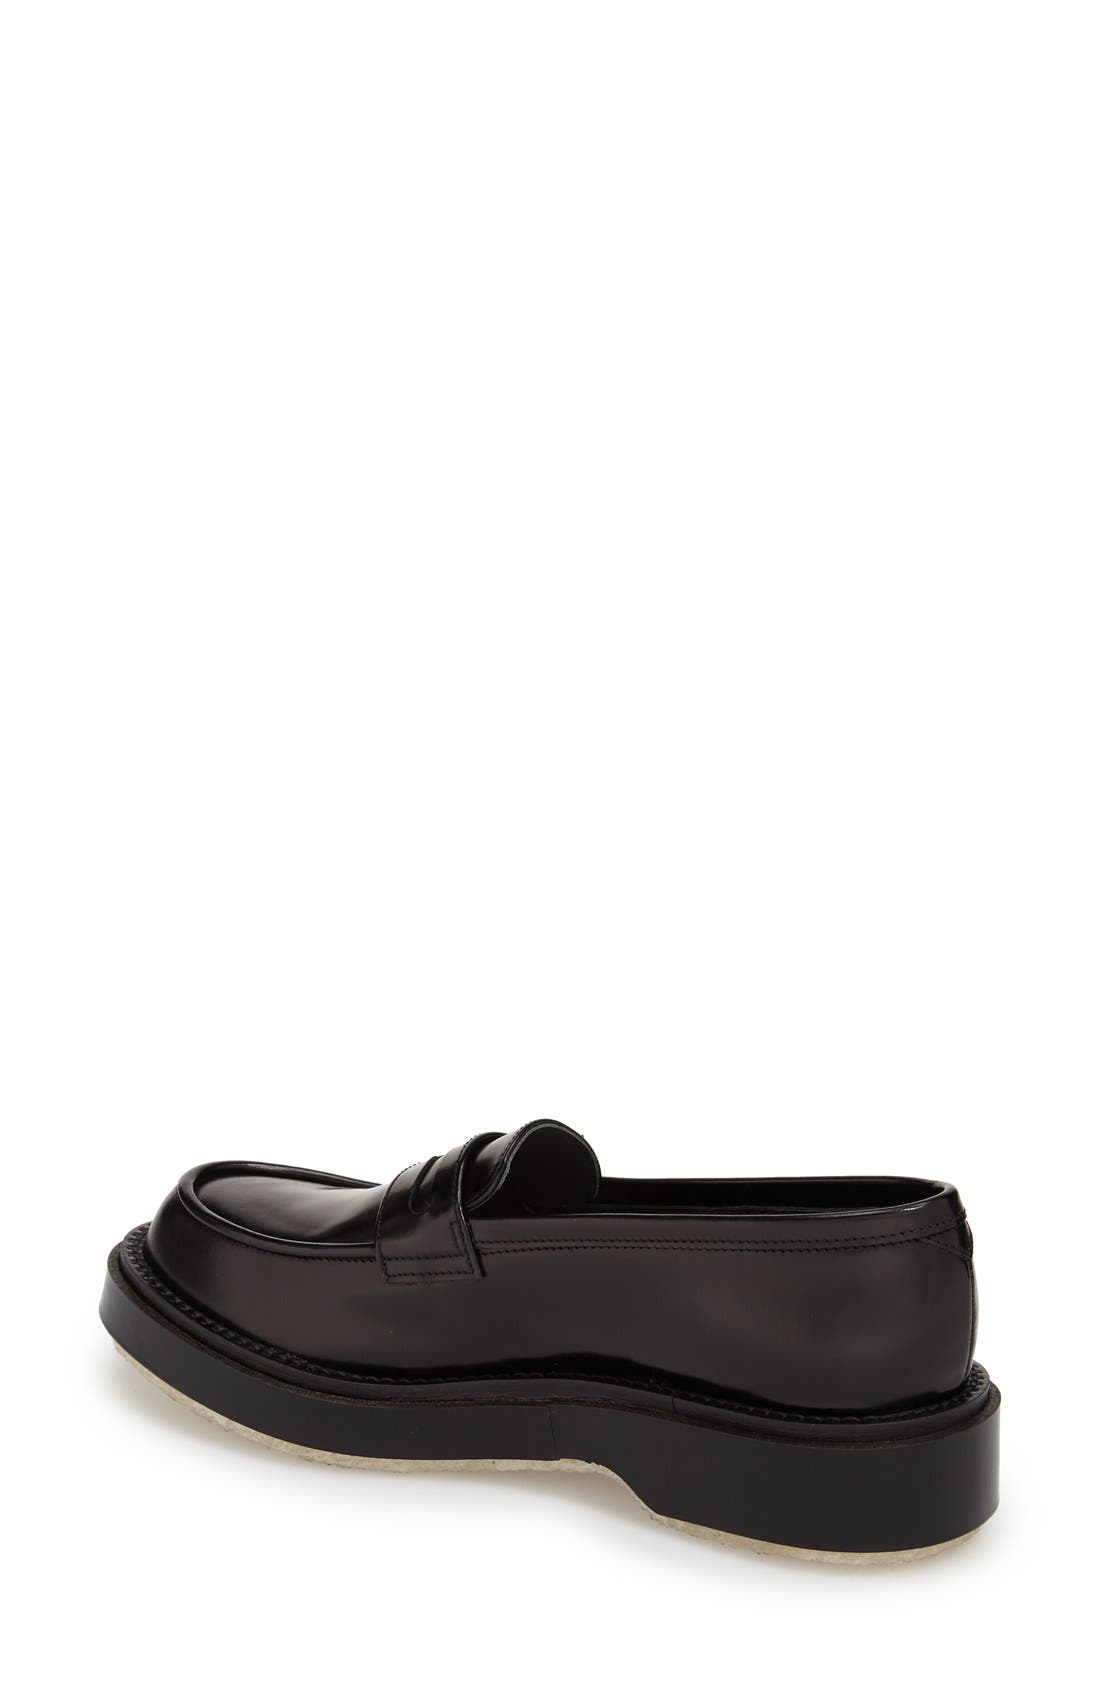 Alternate Image 2  - Adieu Calfskin Leather Penny Loafer (Women)